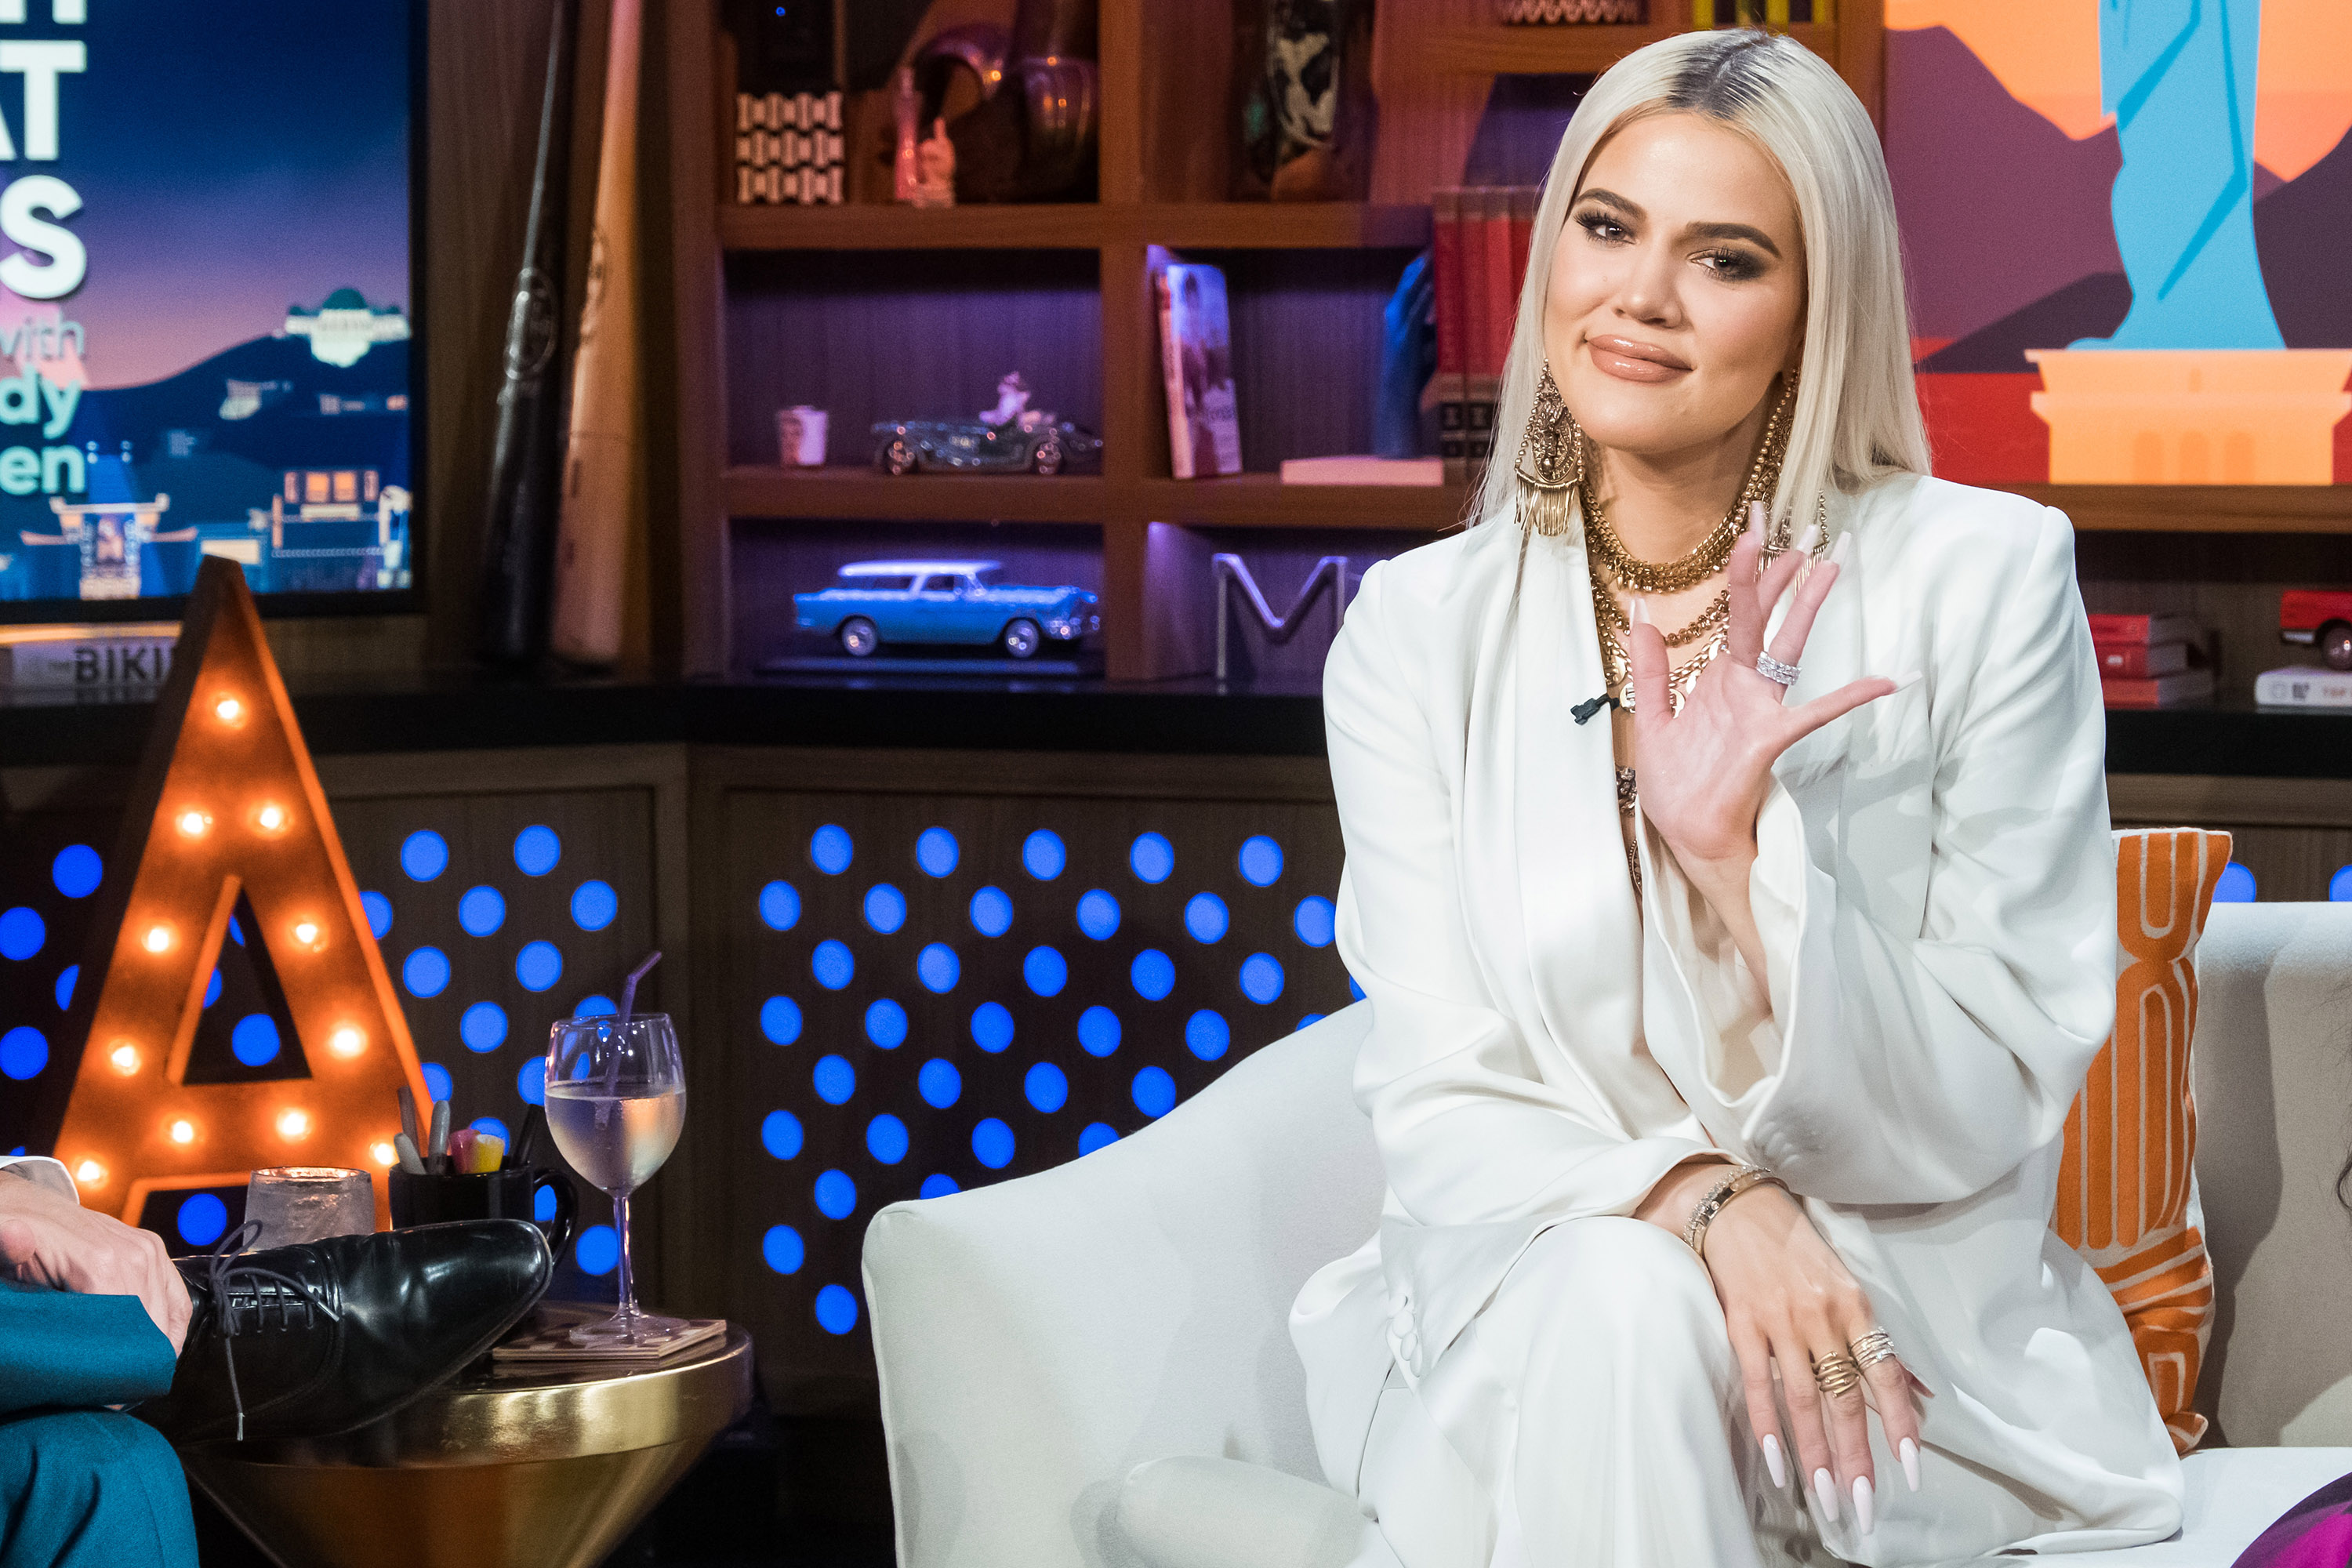 Khloé Kardashian Sets the Record Straight on Those <em>Bachelorette</em> Rumors